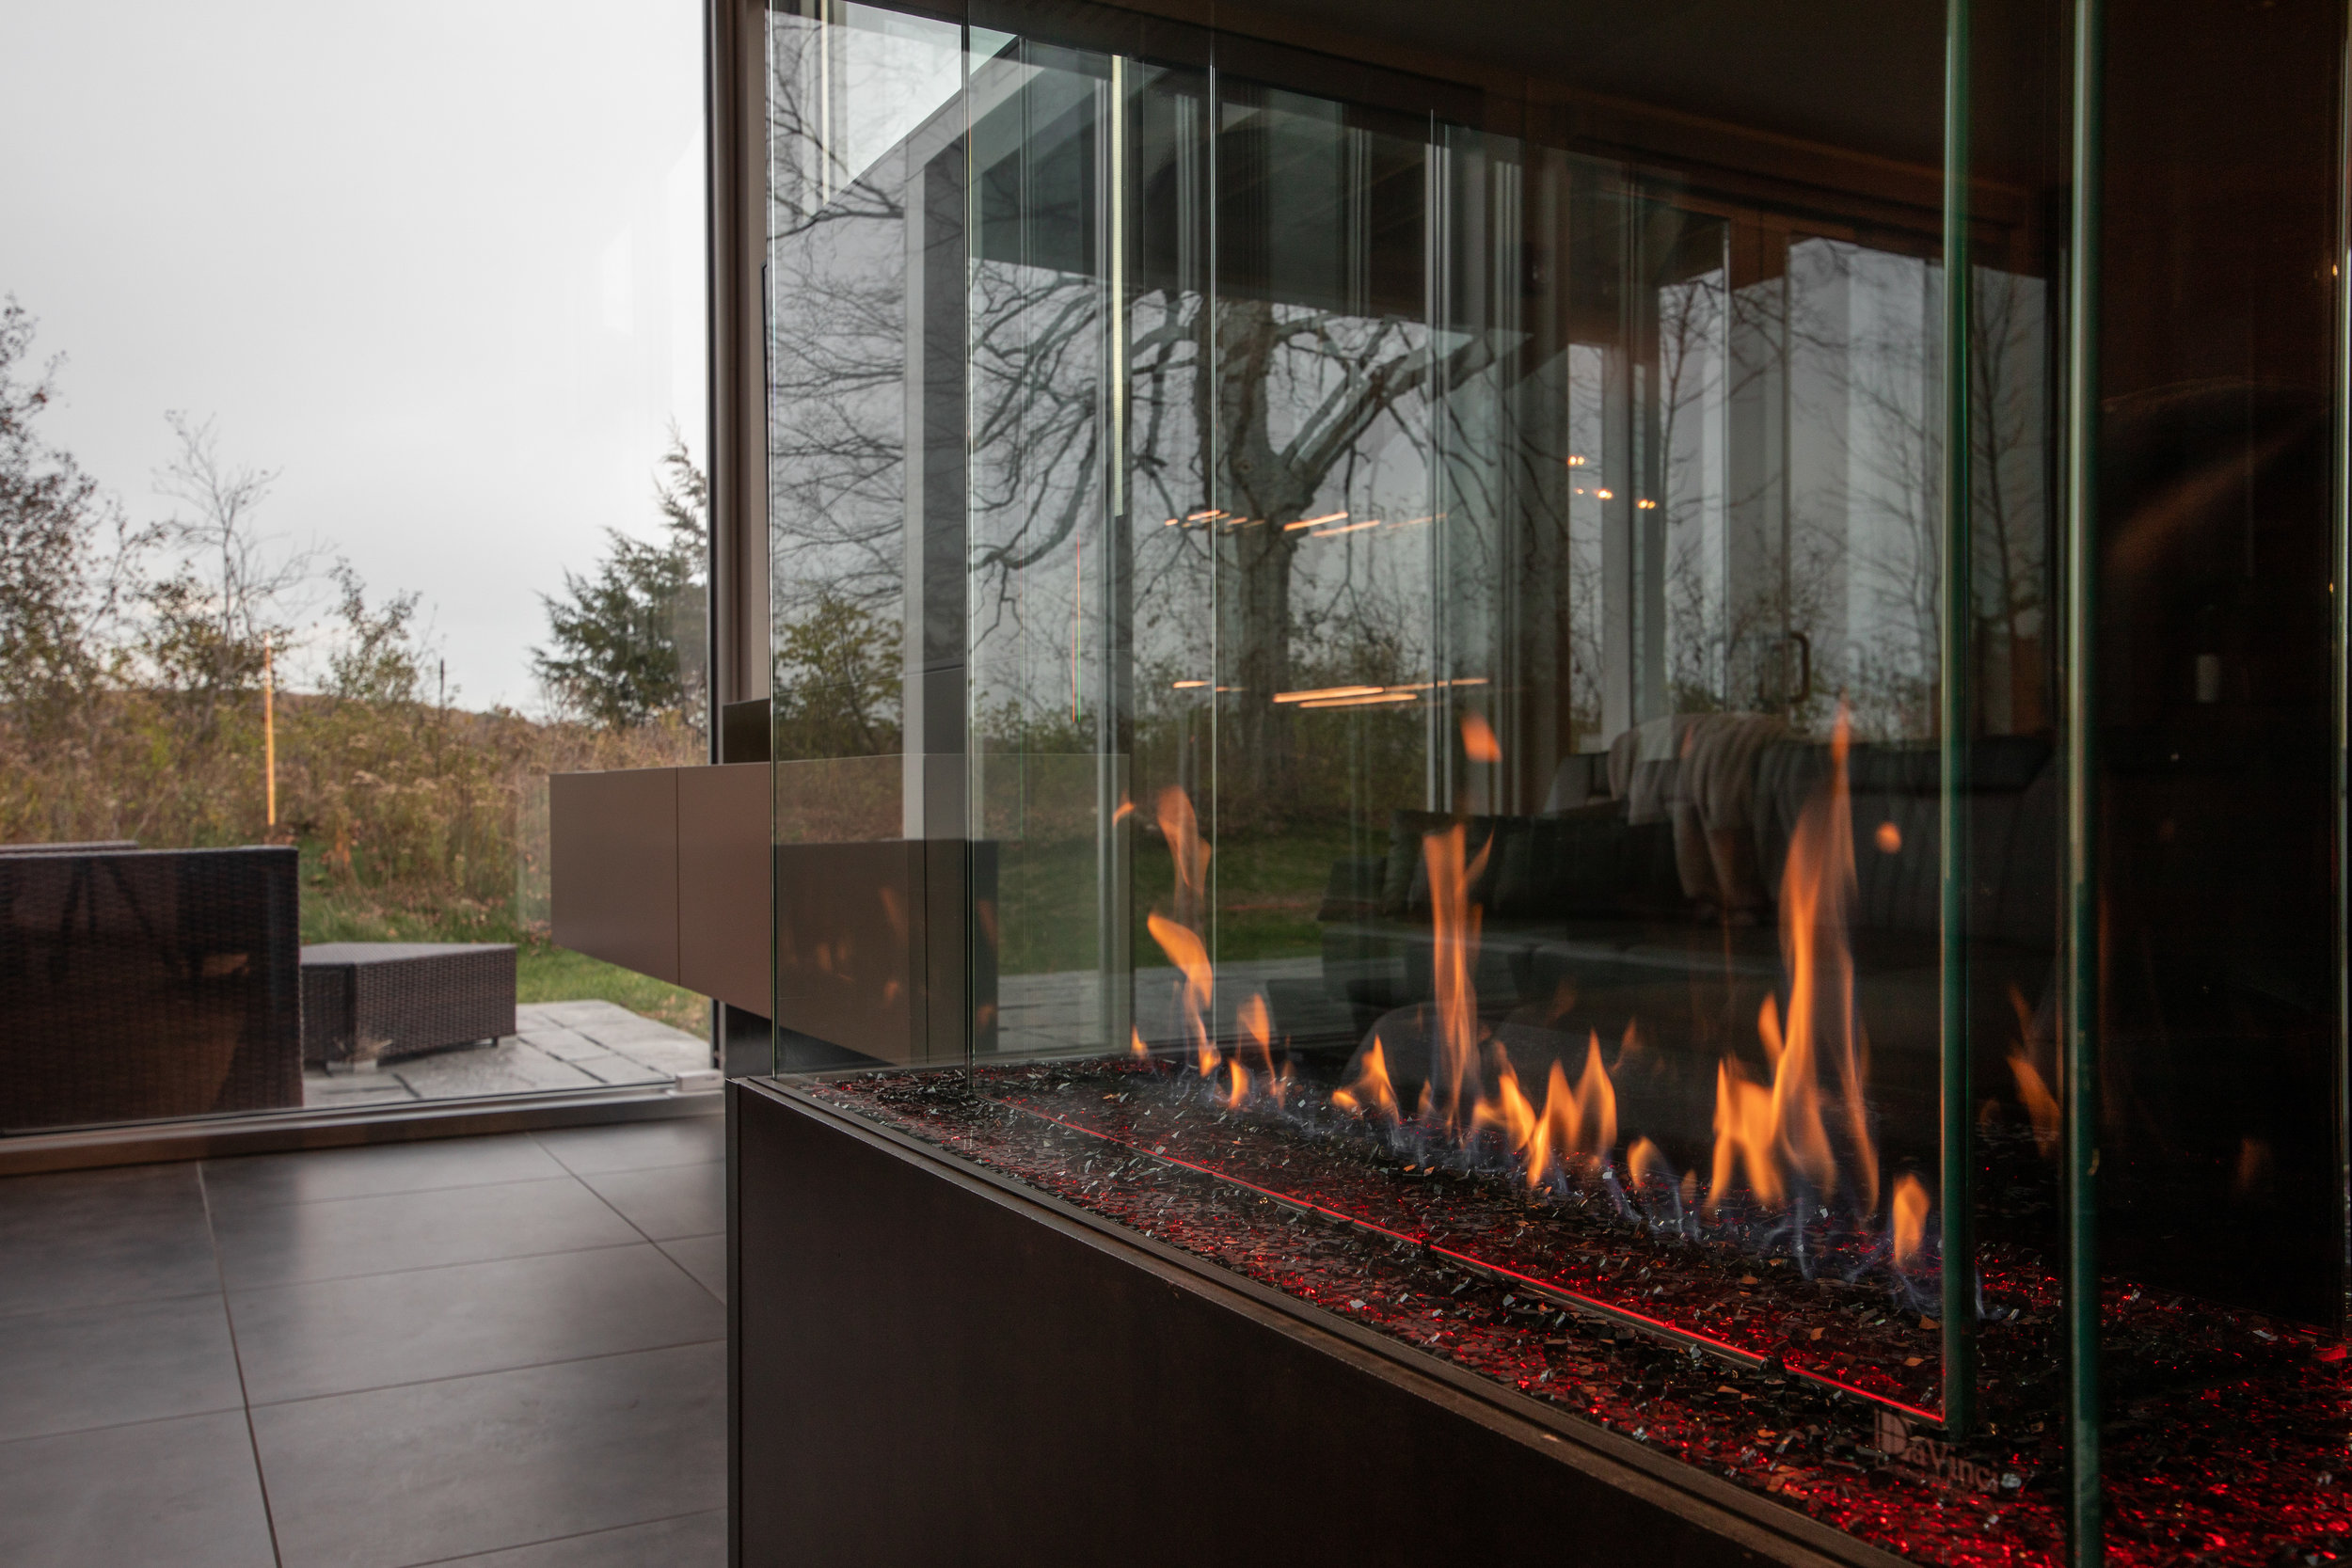 Monte Carlo features a custom, three-sided, fireplace for those relaxing nights in.